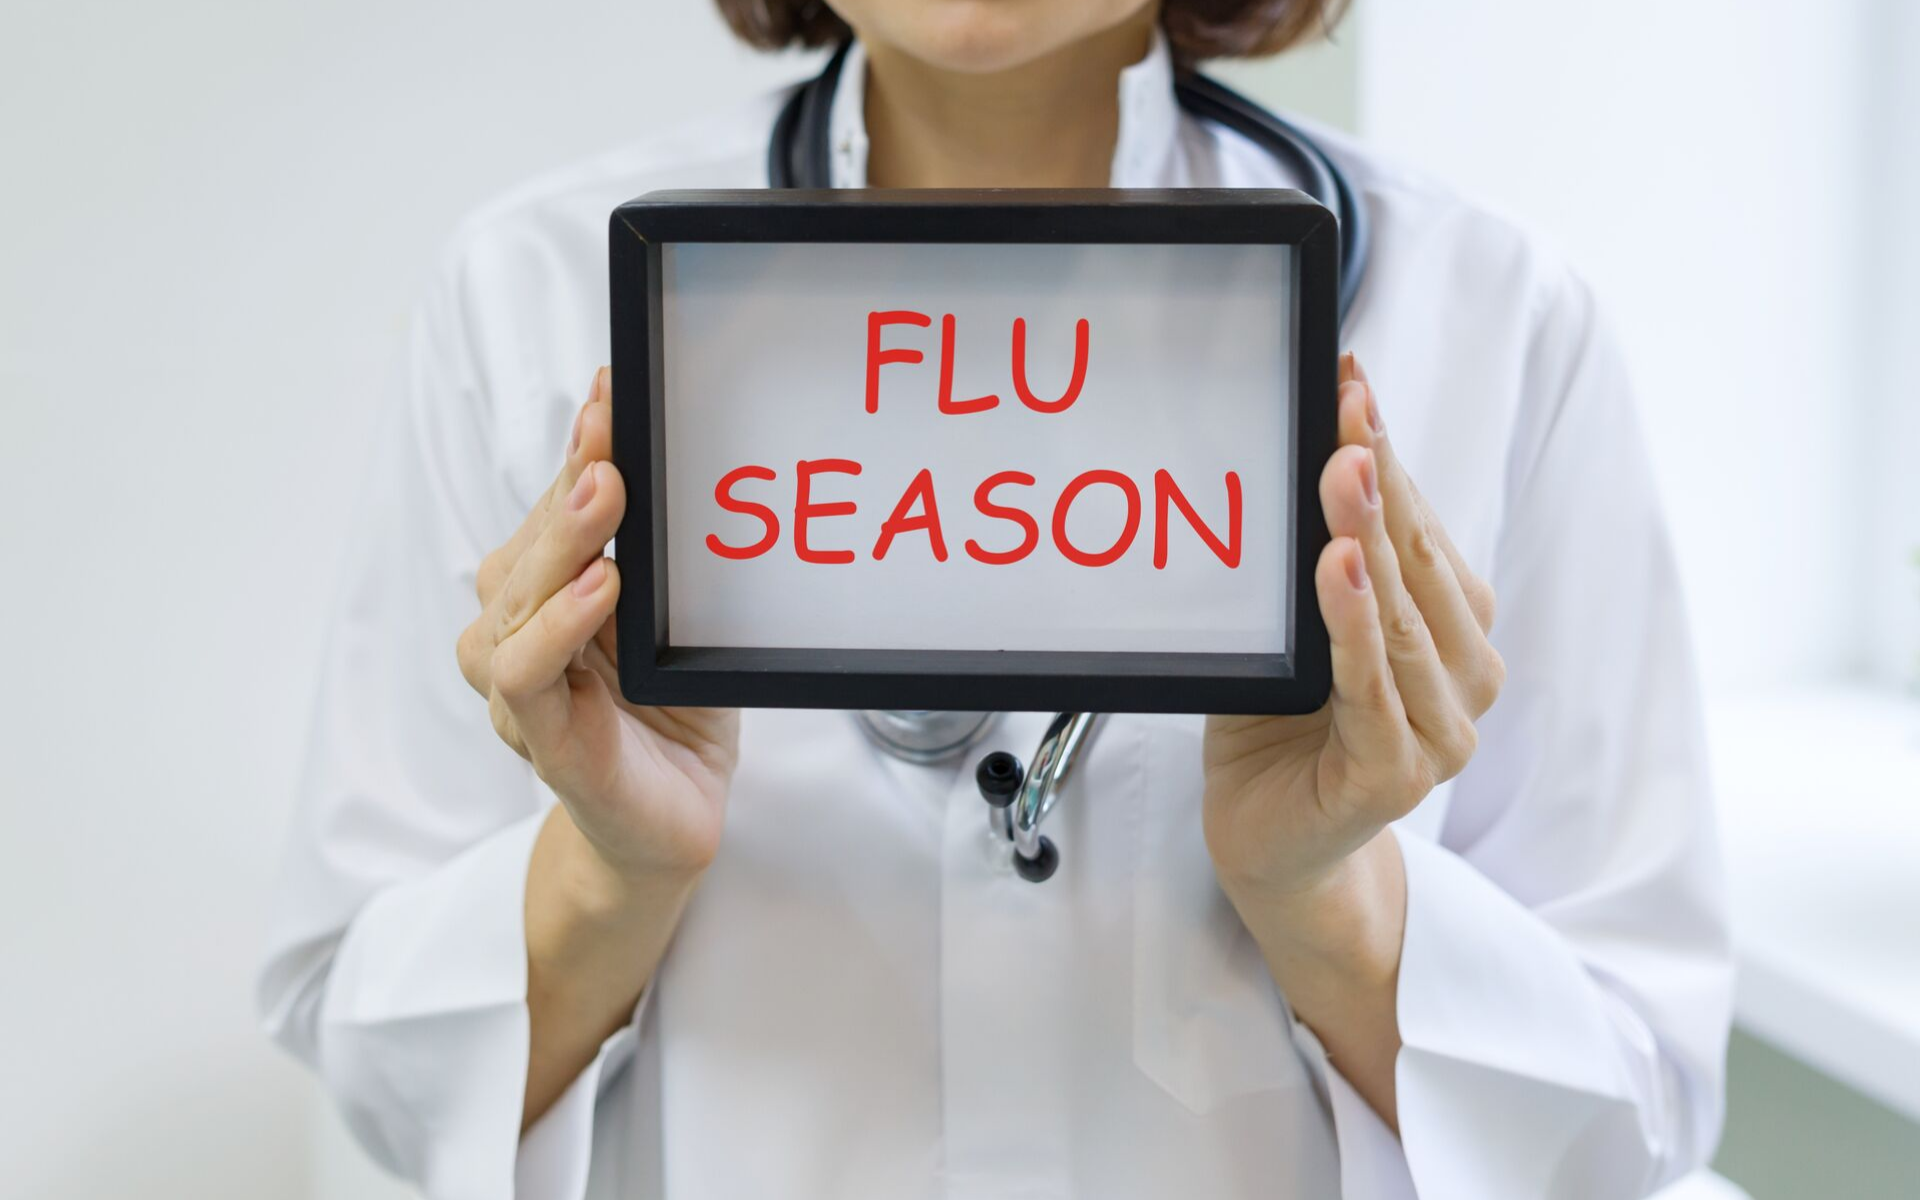 Flu jabs in Teddington. Why is it important to have flu jabs?